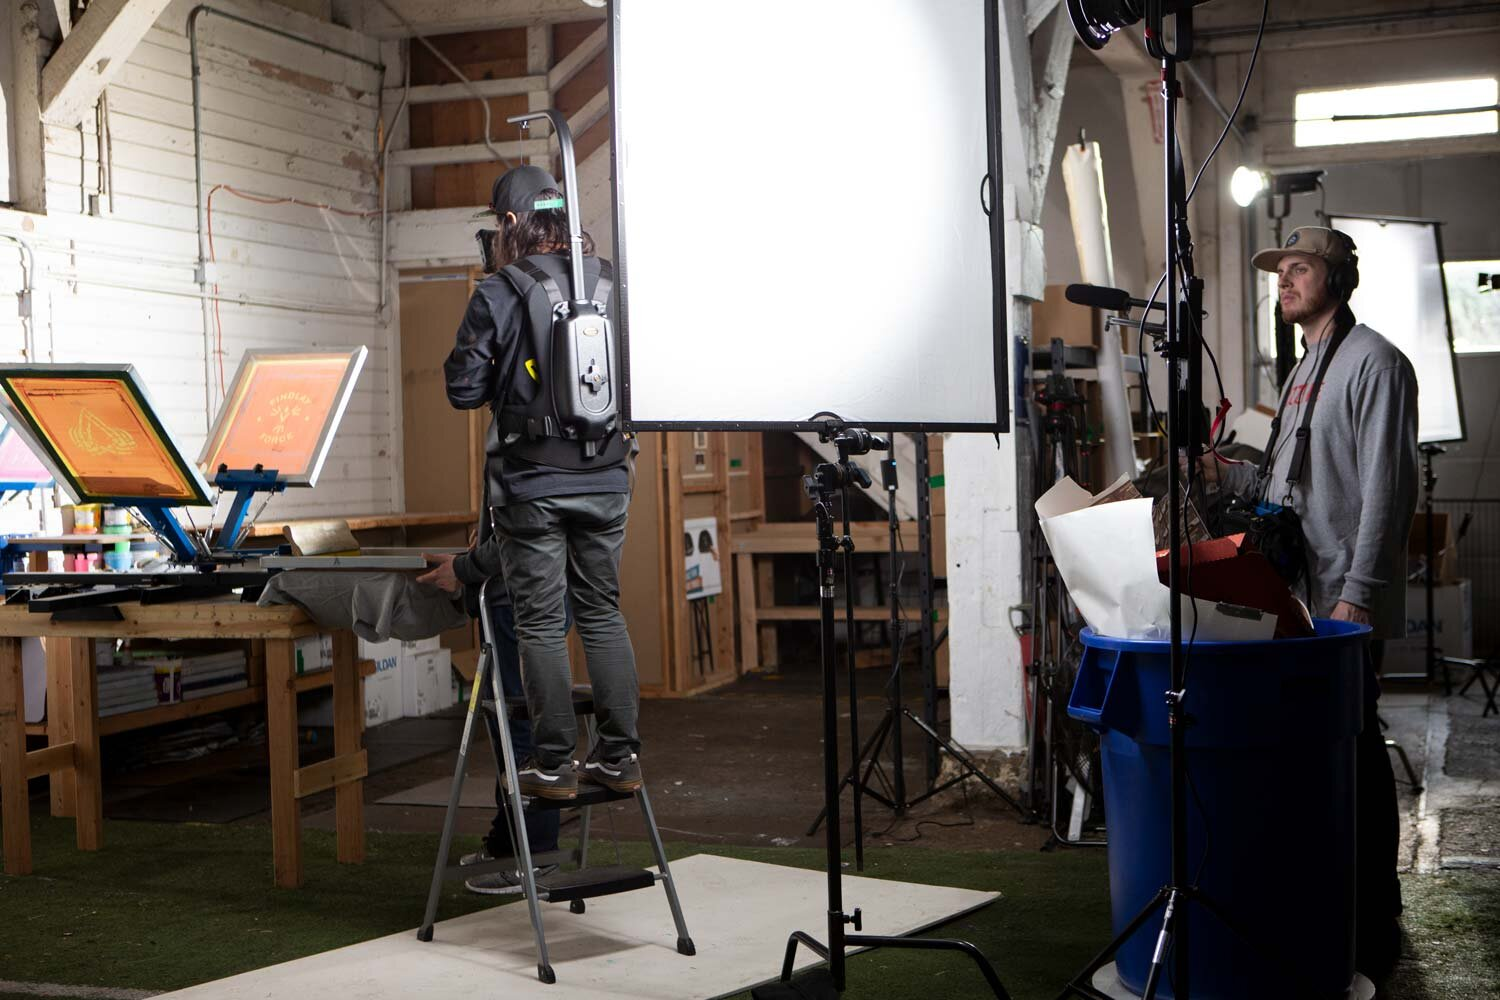 video-production-outlive-creative-035.jpg